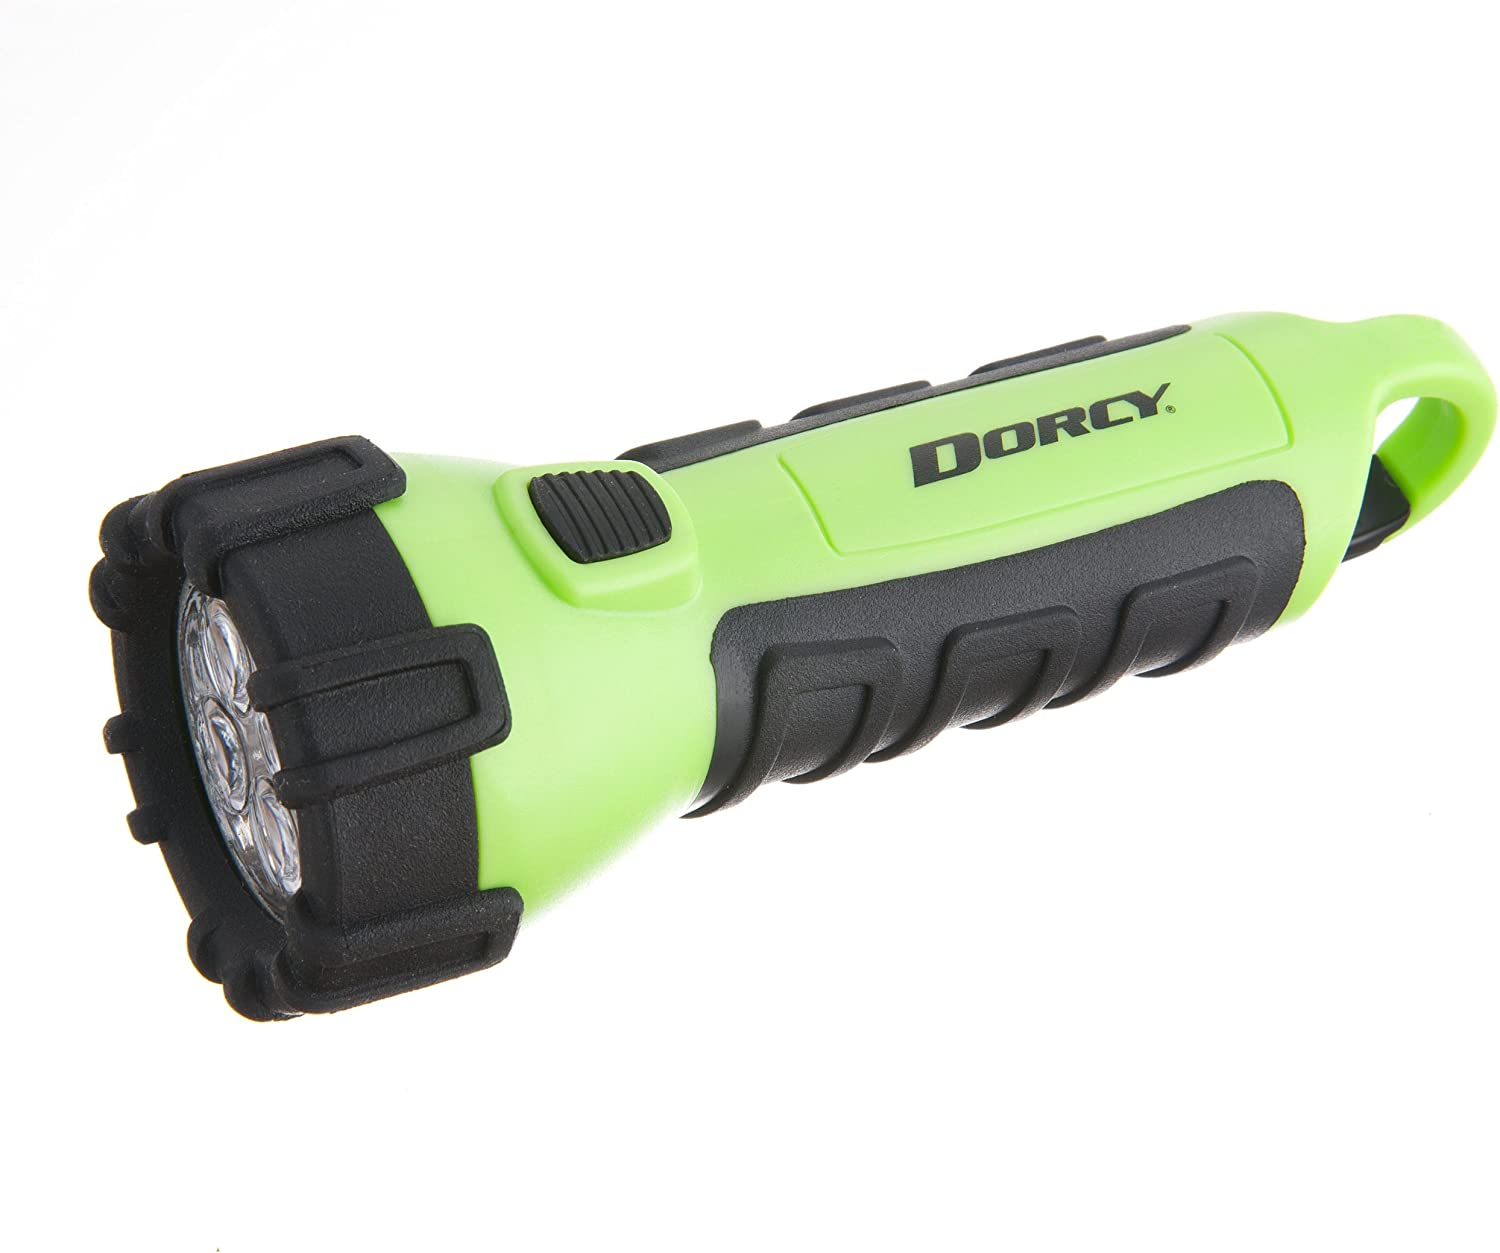 Dorcy 55 Lumen Floating Waterproof LED Flashlight with Carabineer Neon Green